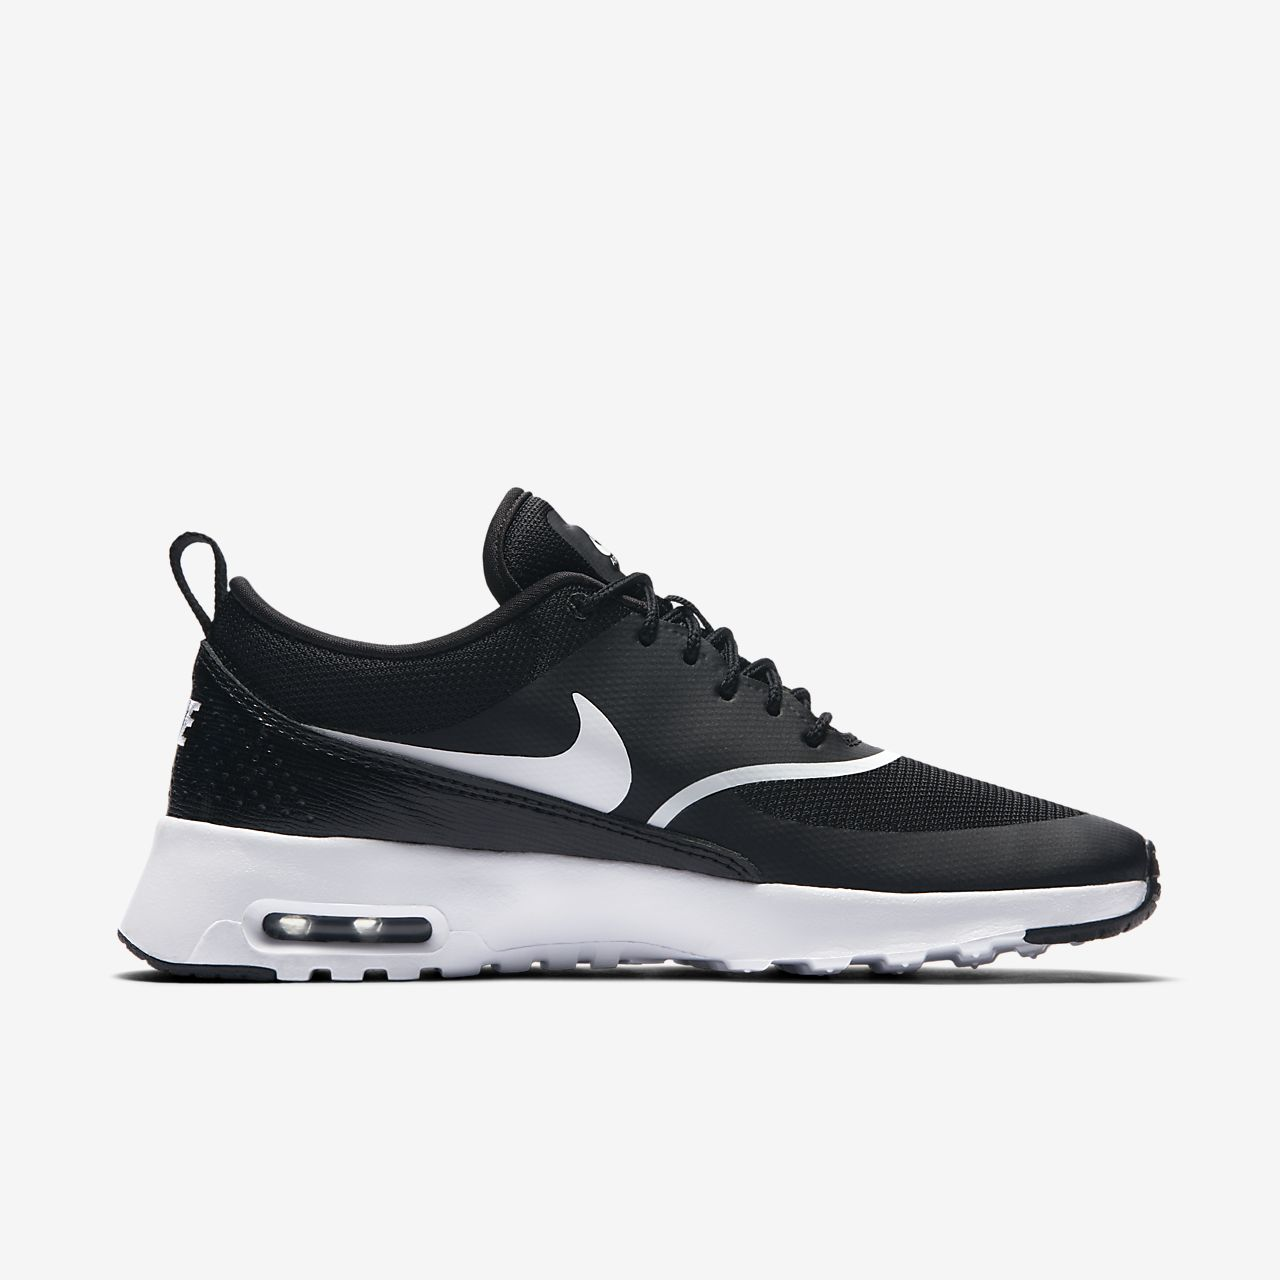 nike air max 2017 id women's running shoe nz